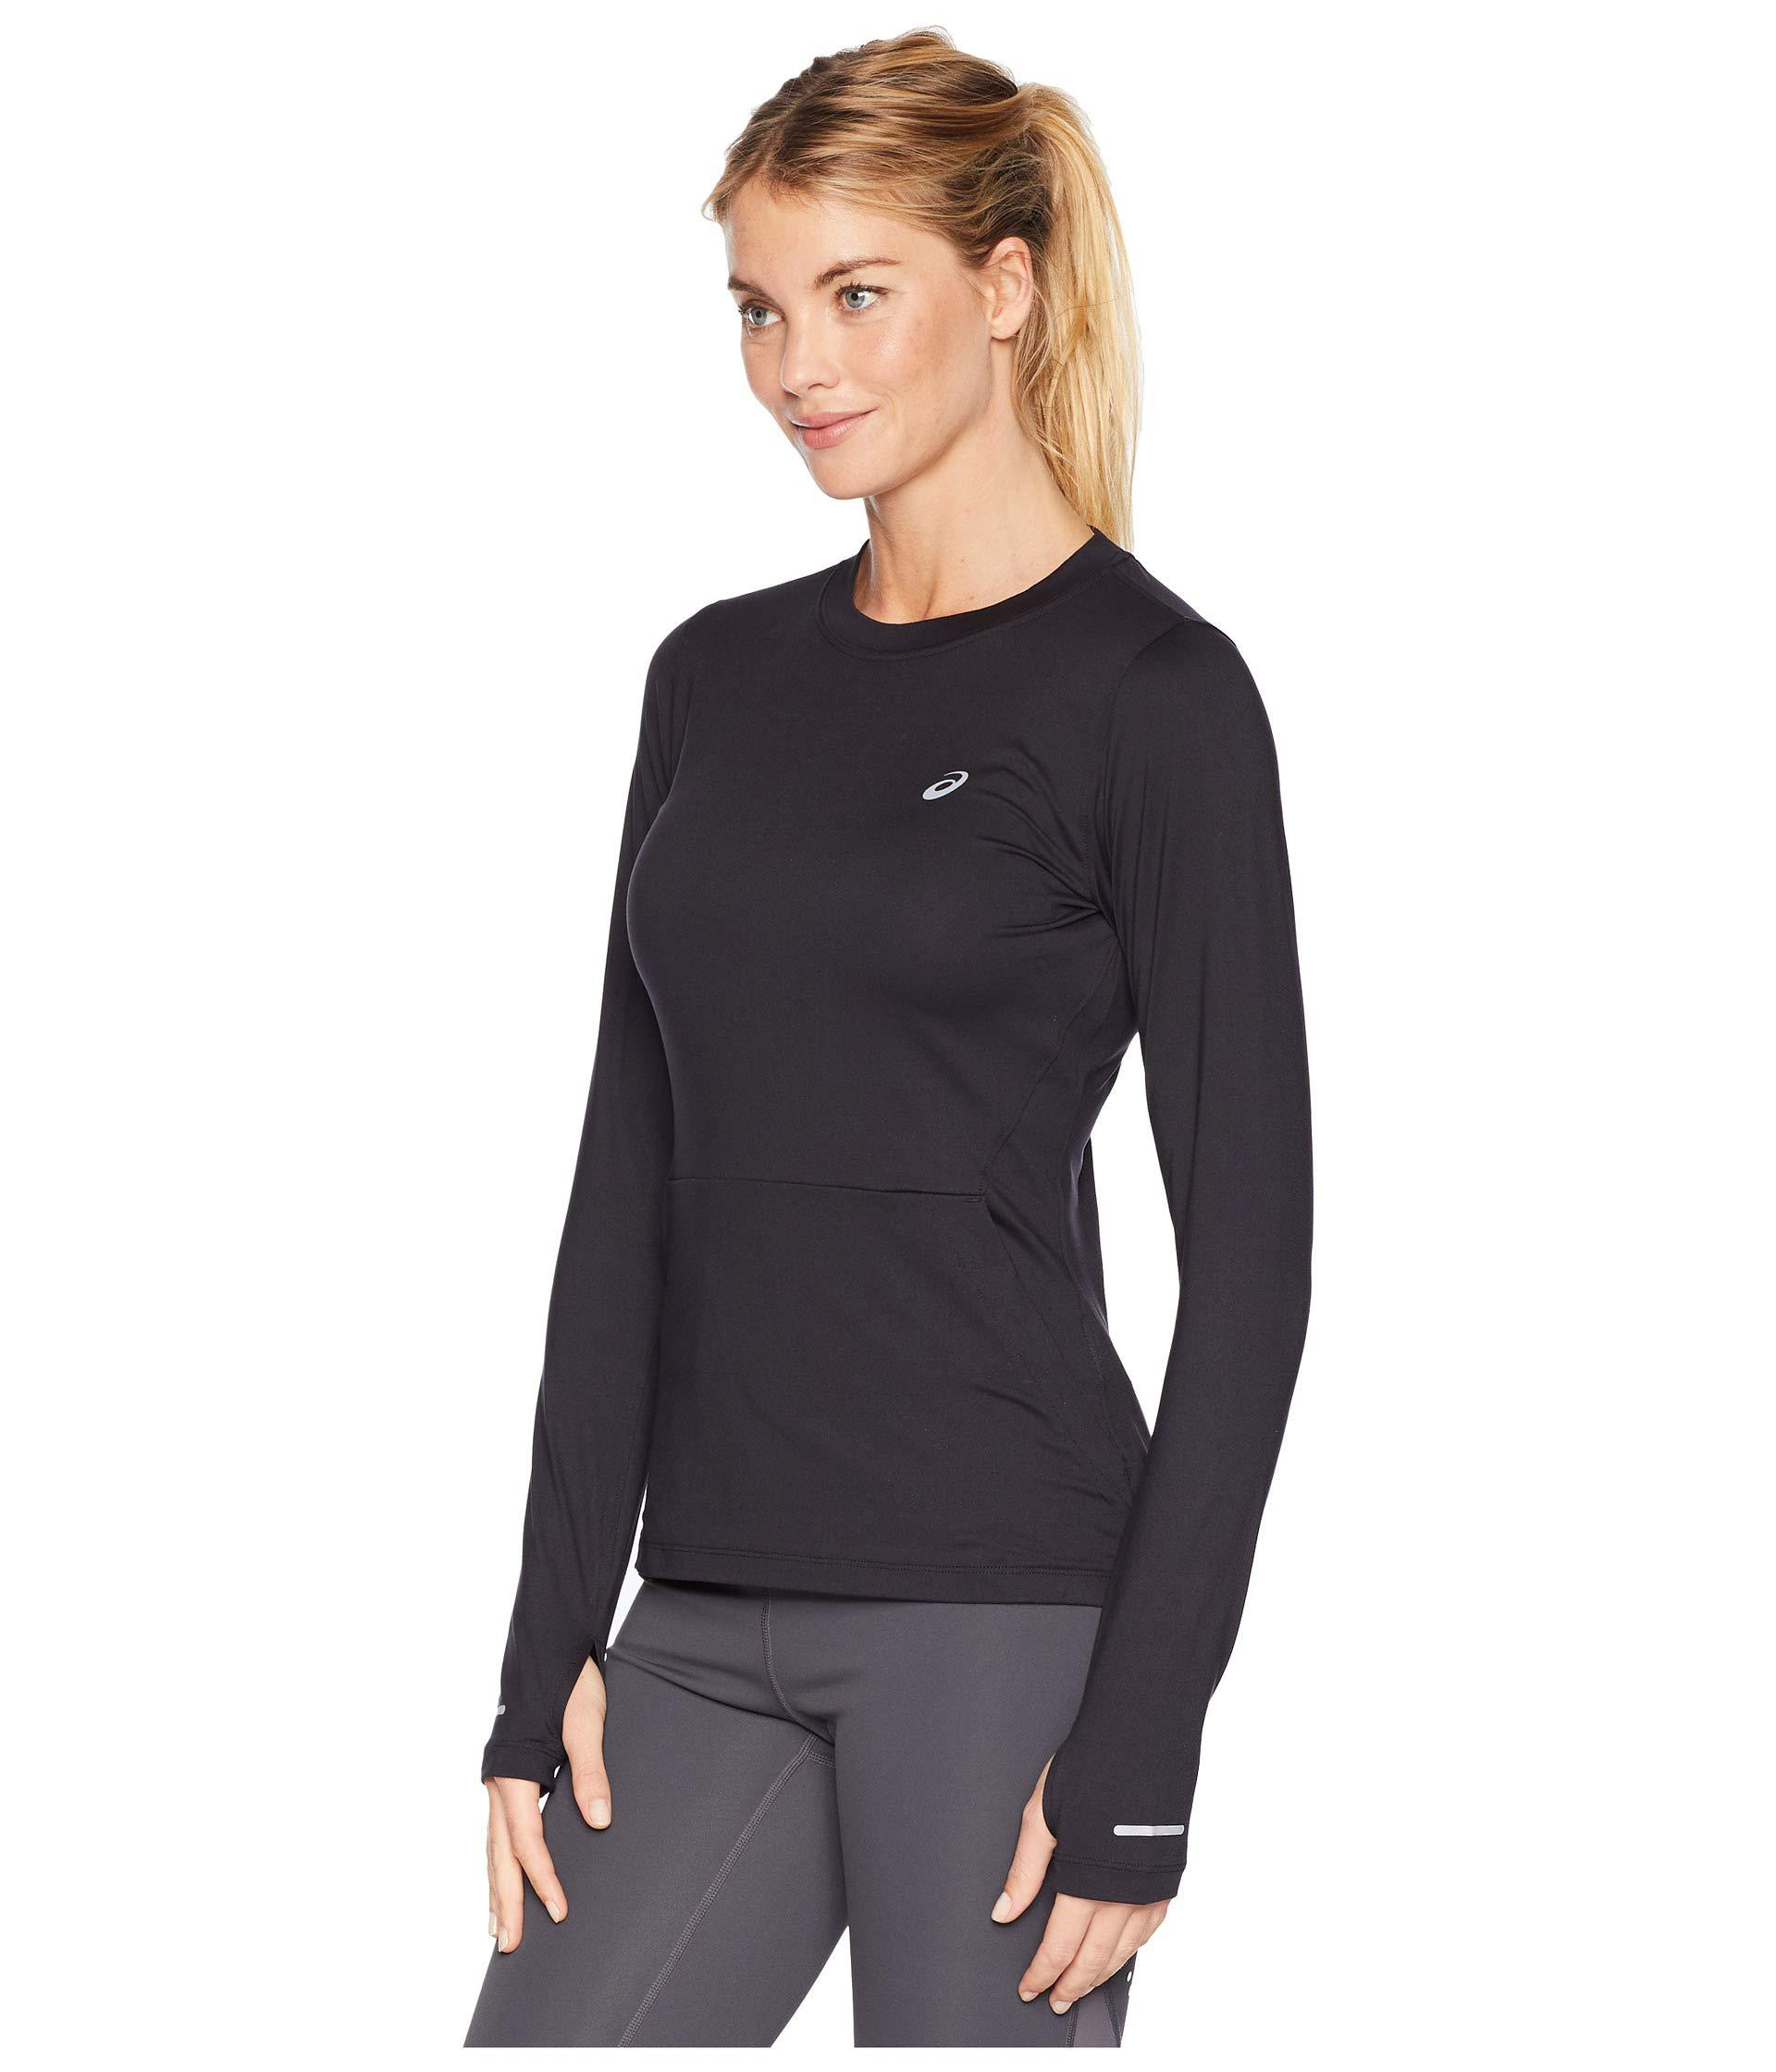 8a0ee268fa4c Lyst - Asics Thermopolistm Plus Long Sleeve Top (performance Black) Women s  Long Sleeve Pullover in Black